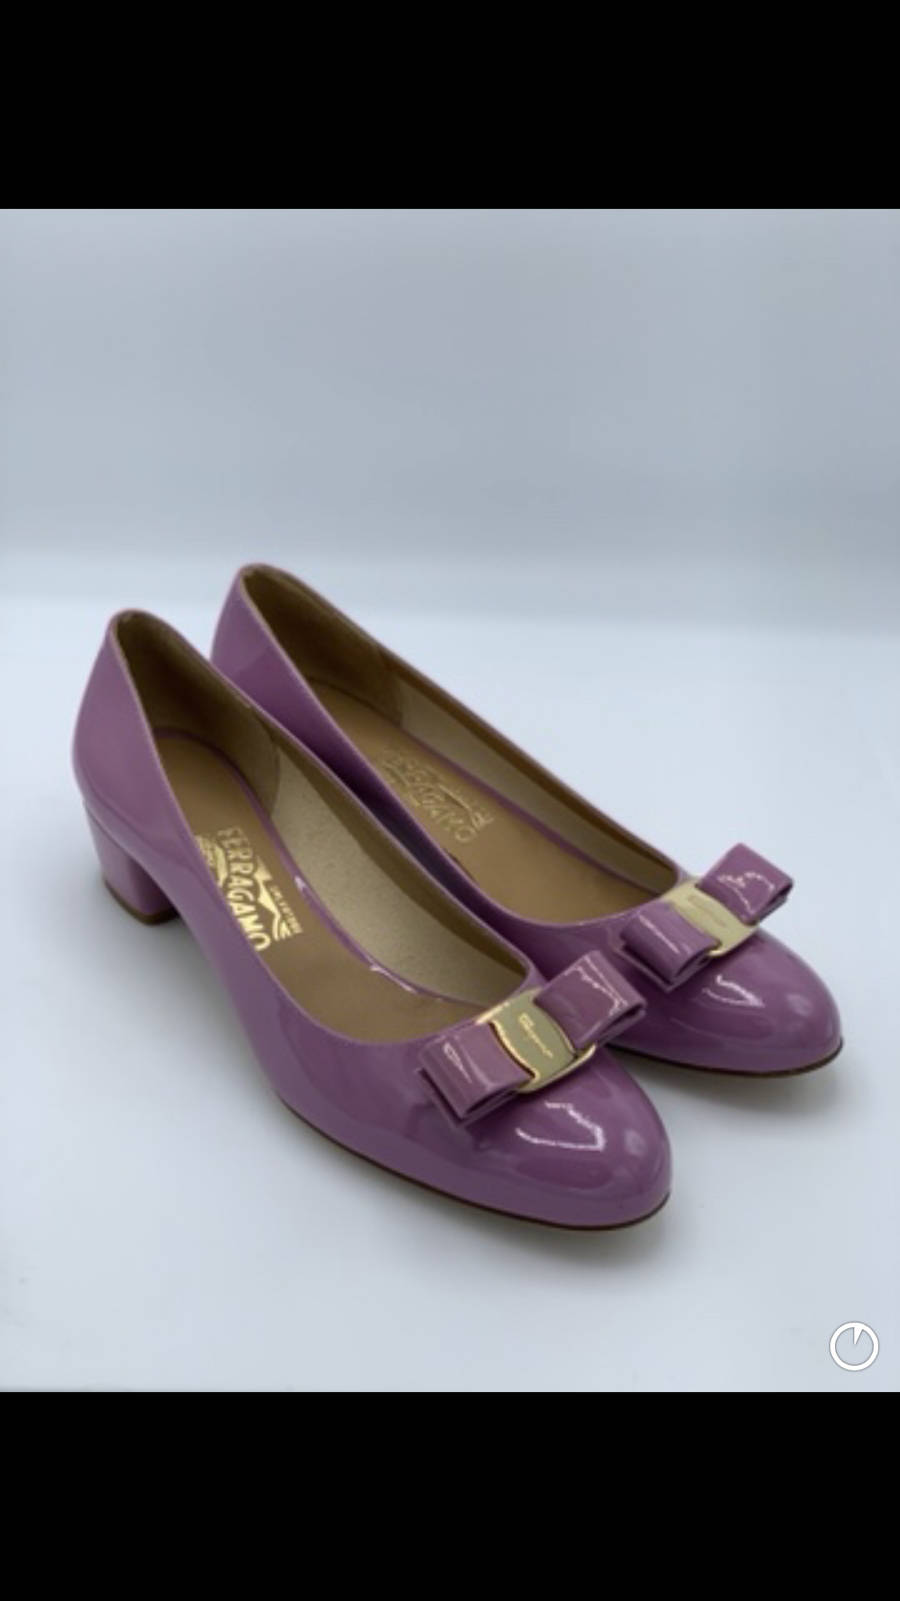 Salvatore-Ferragamo-Shoe-10-Pump-Patent-Leather-Bow-Lavender-New-Gold-Hardware_12611A.jpg